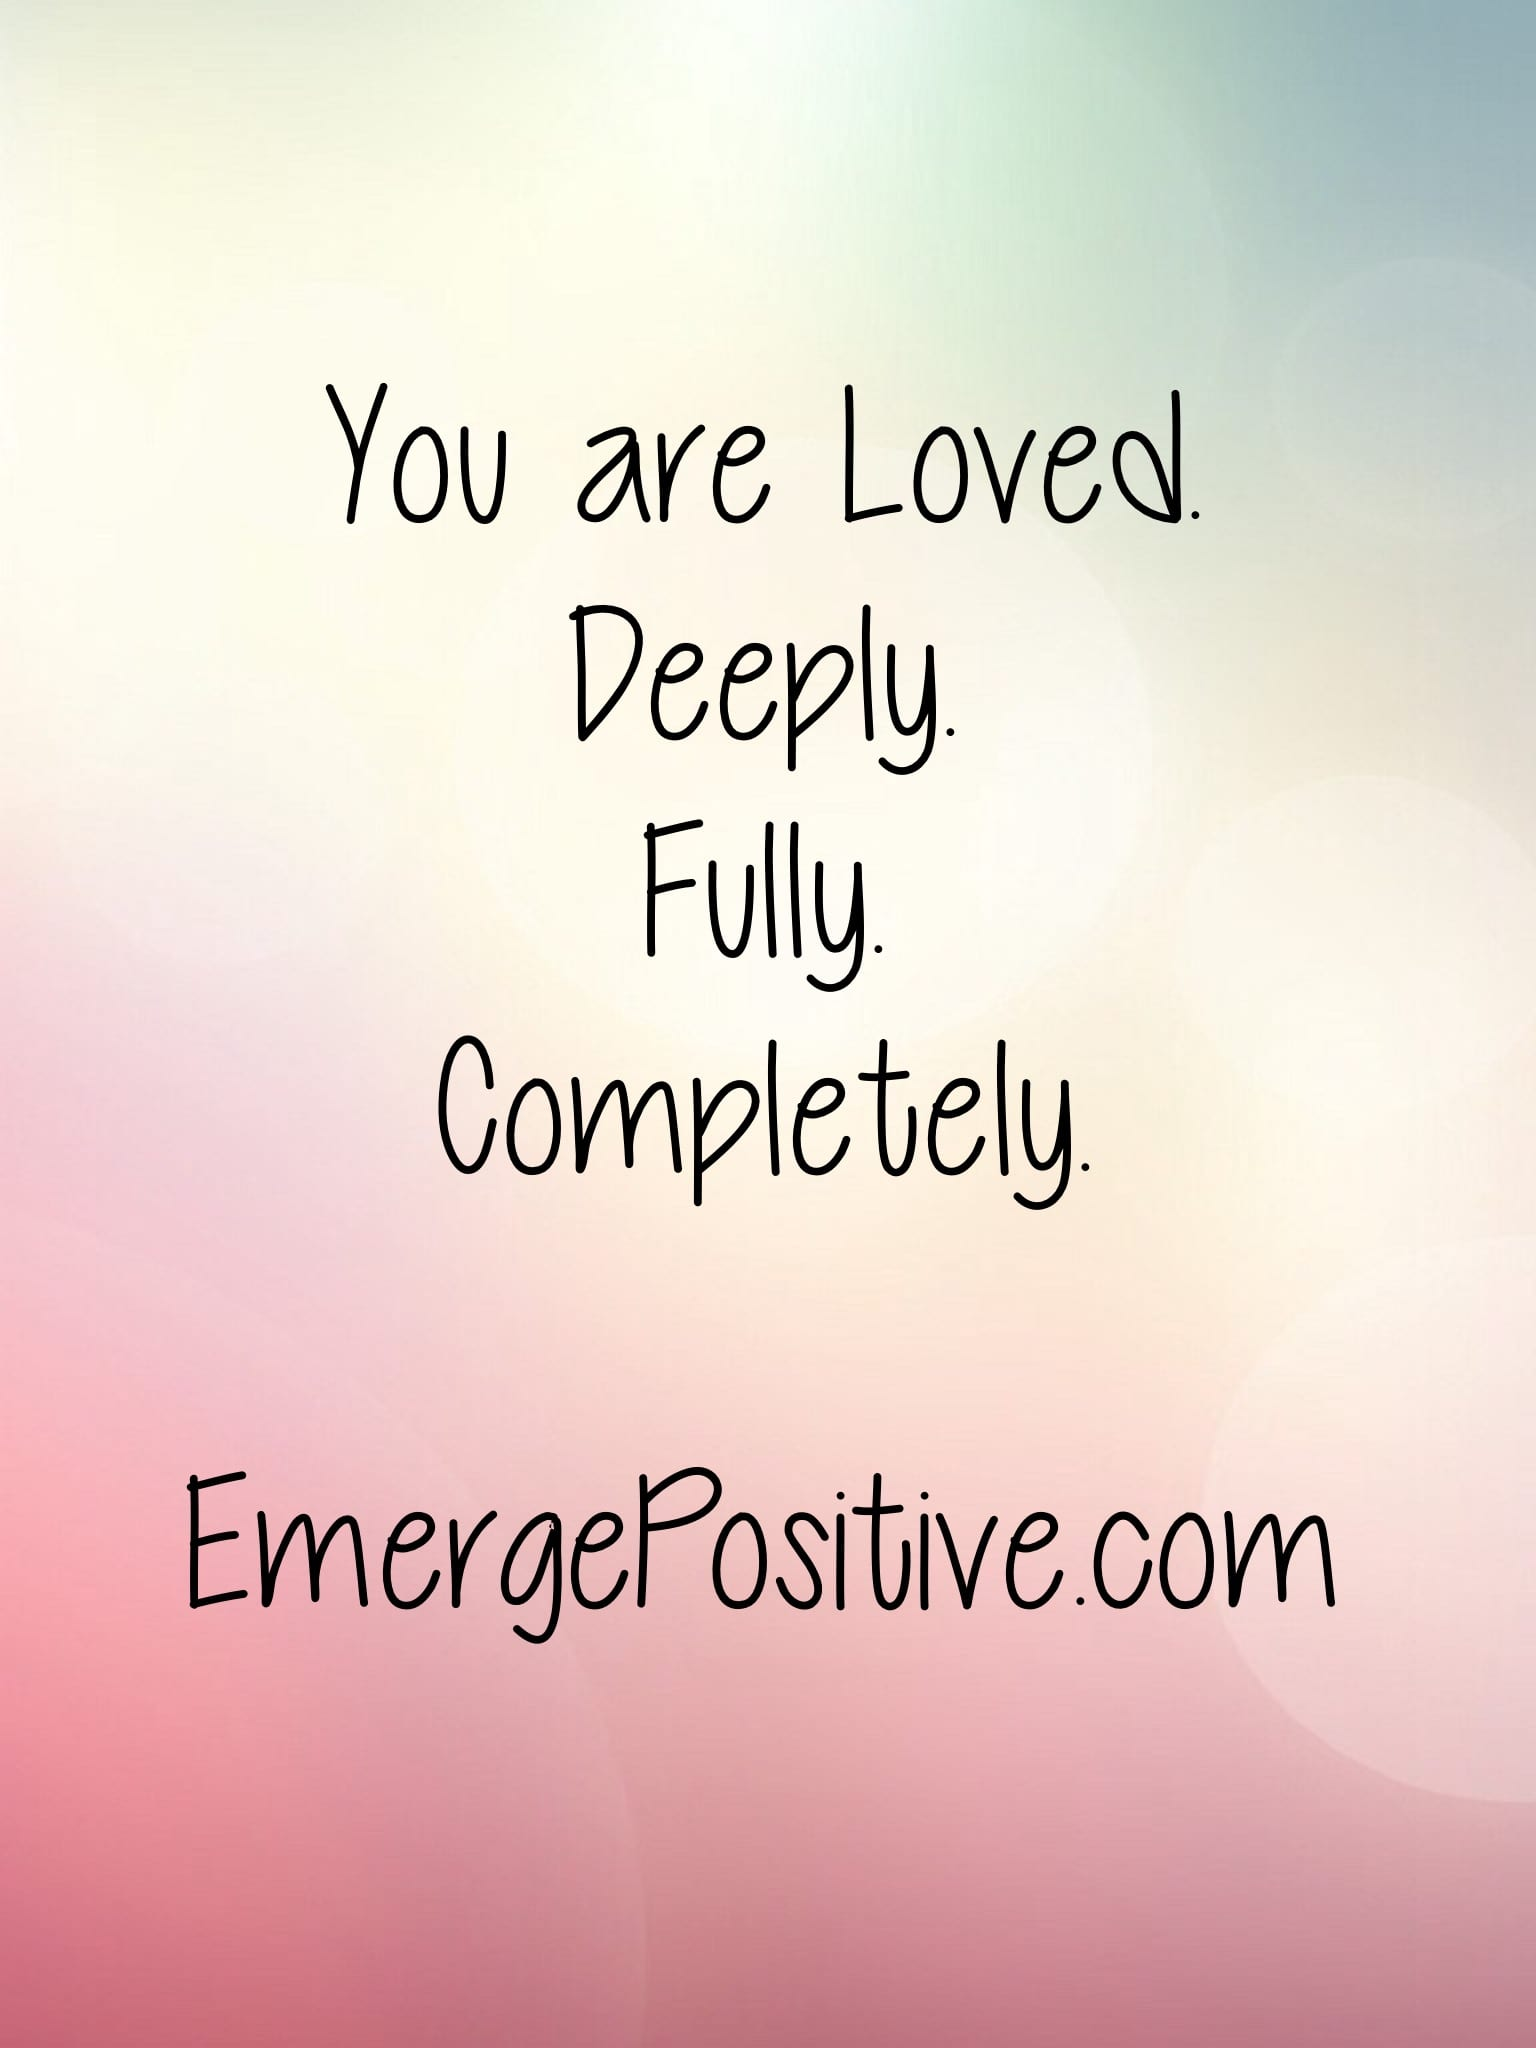 5f2a38c174d43 In case you forgot.... - Emerge Positive®